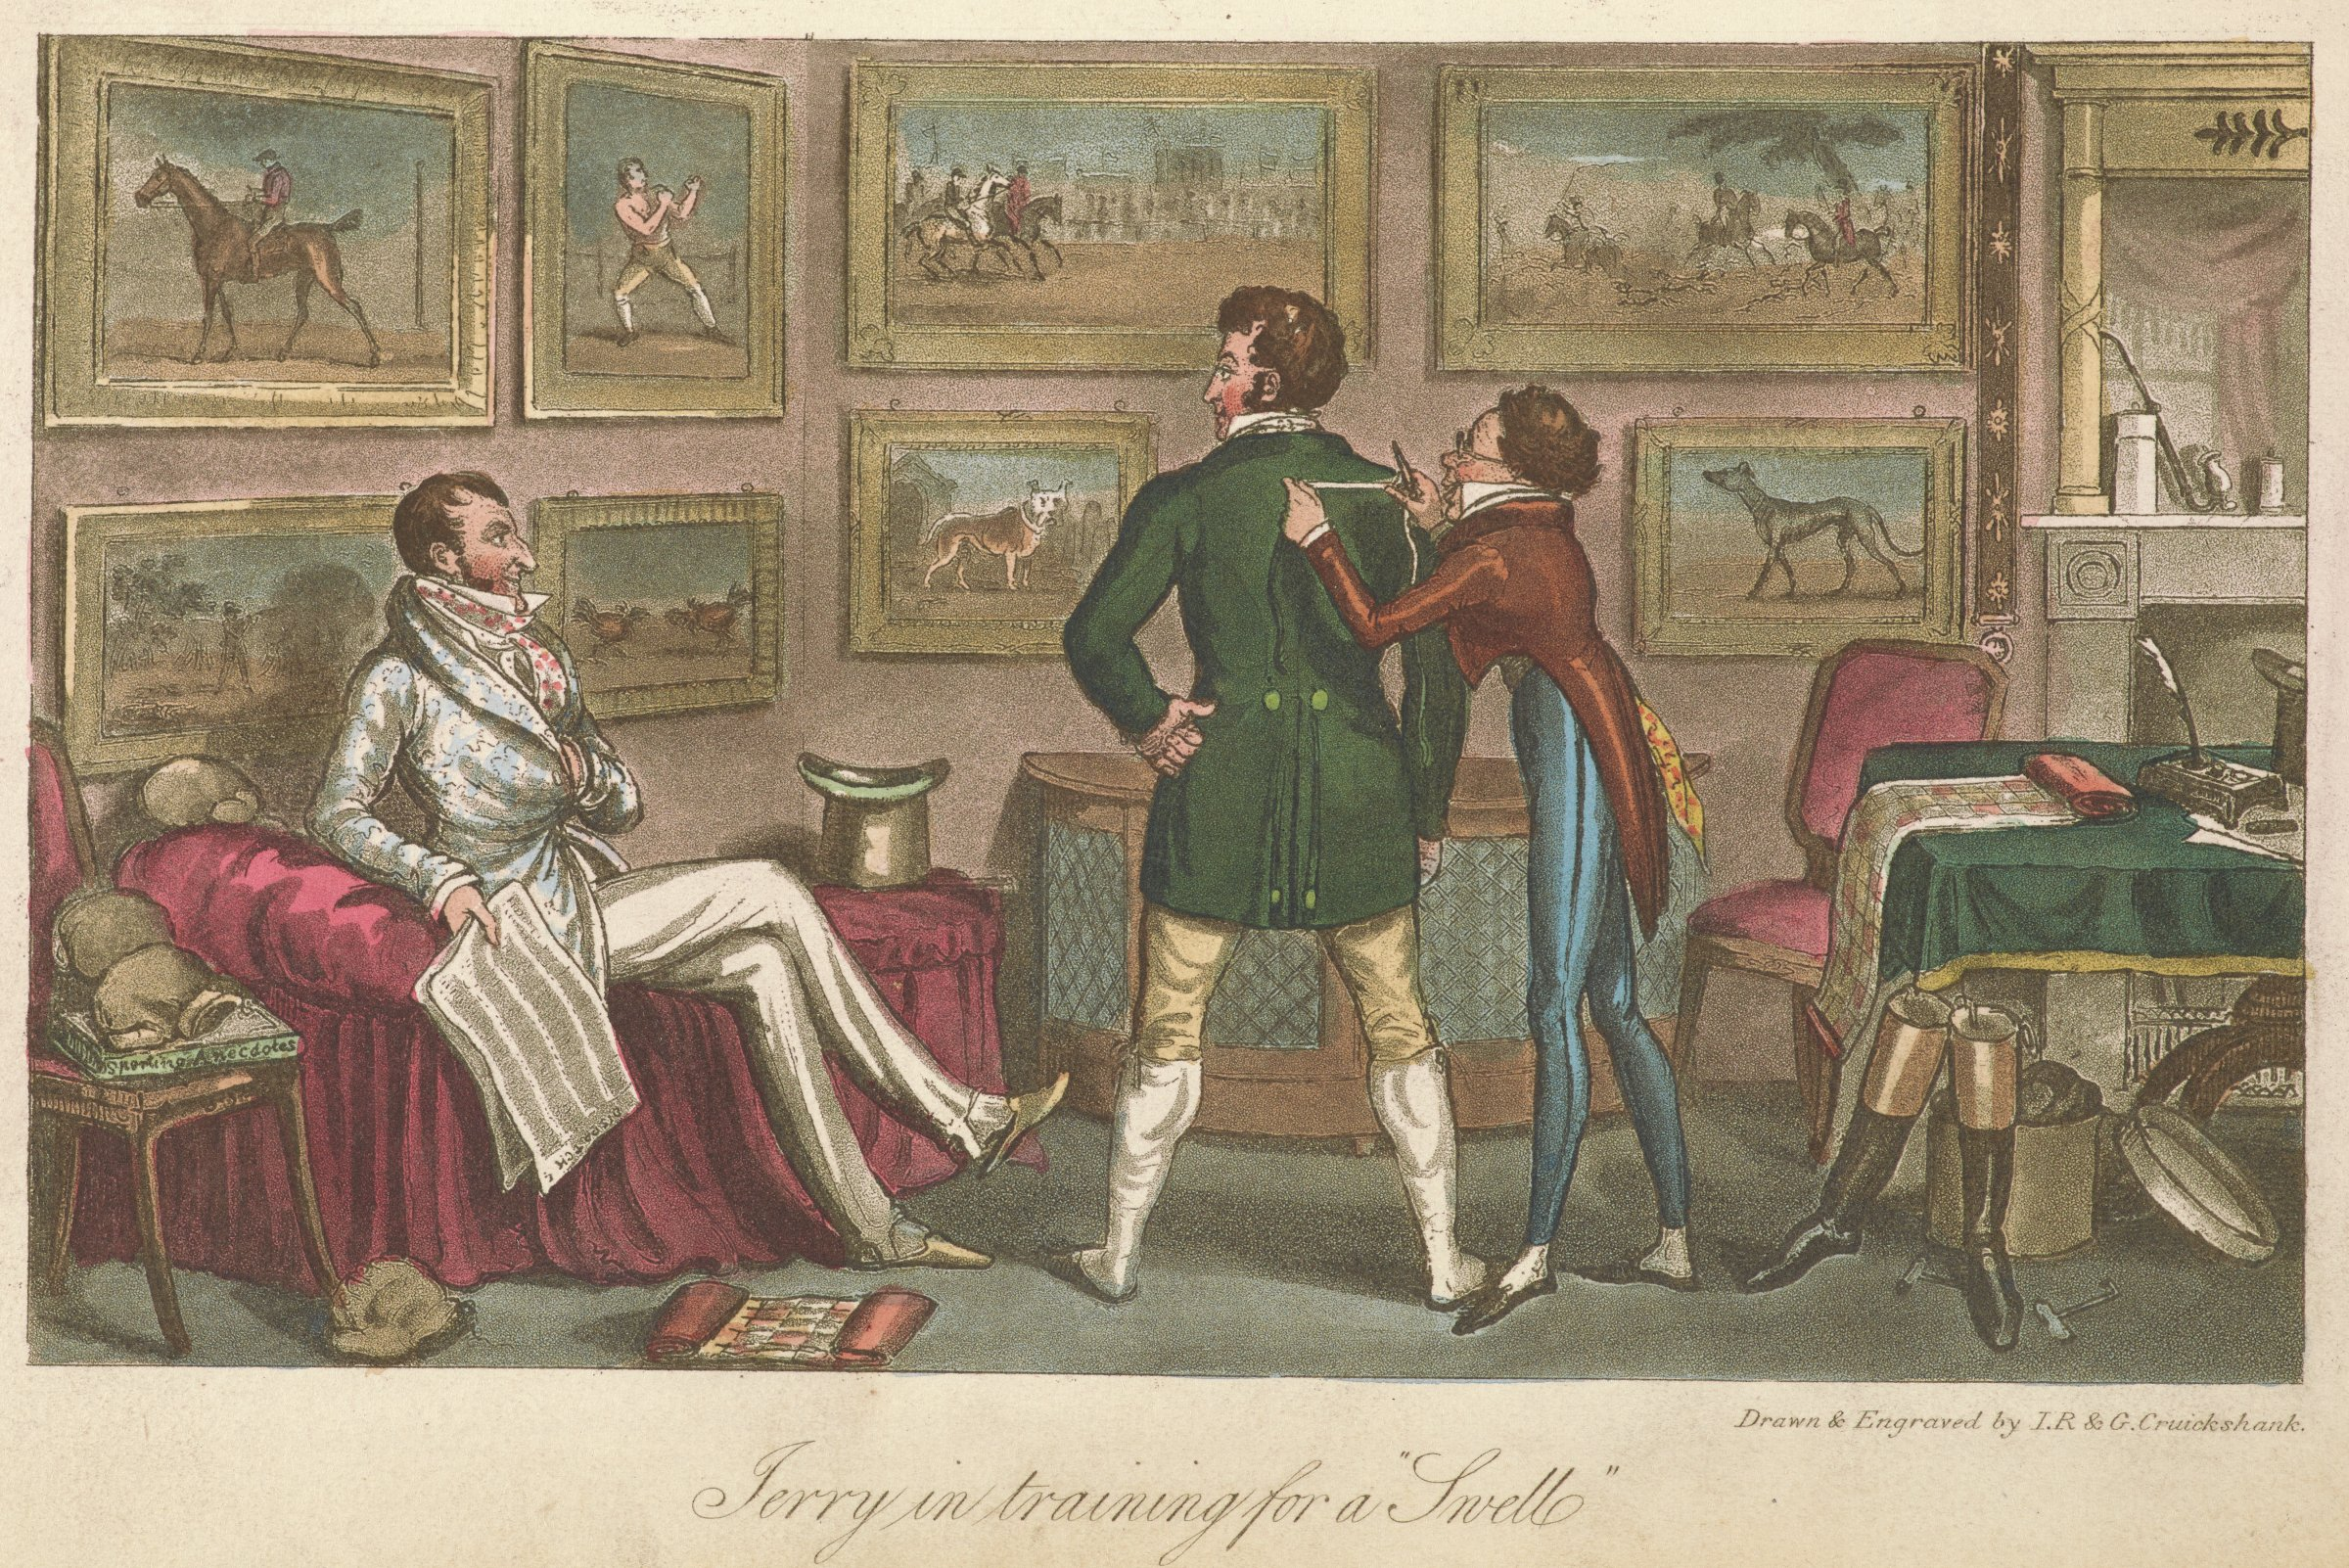 Scene of a man in a green jacket in a fitting with a man holding a measuring tape on the right. A man in a patterned jacket holds a newspaper and looks on from a couch on the left.